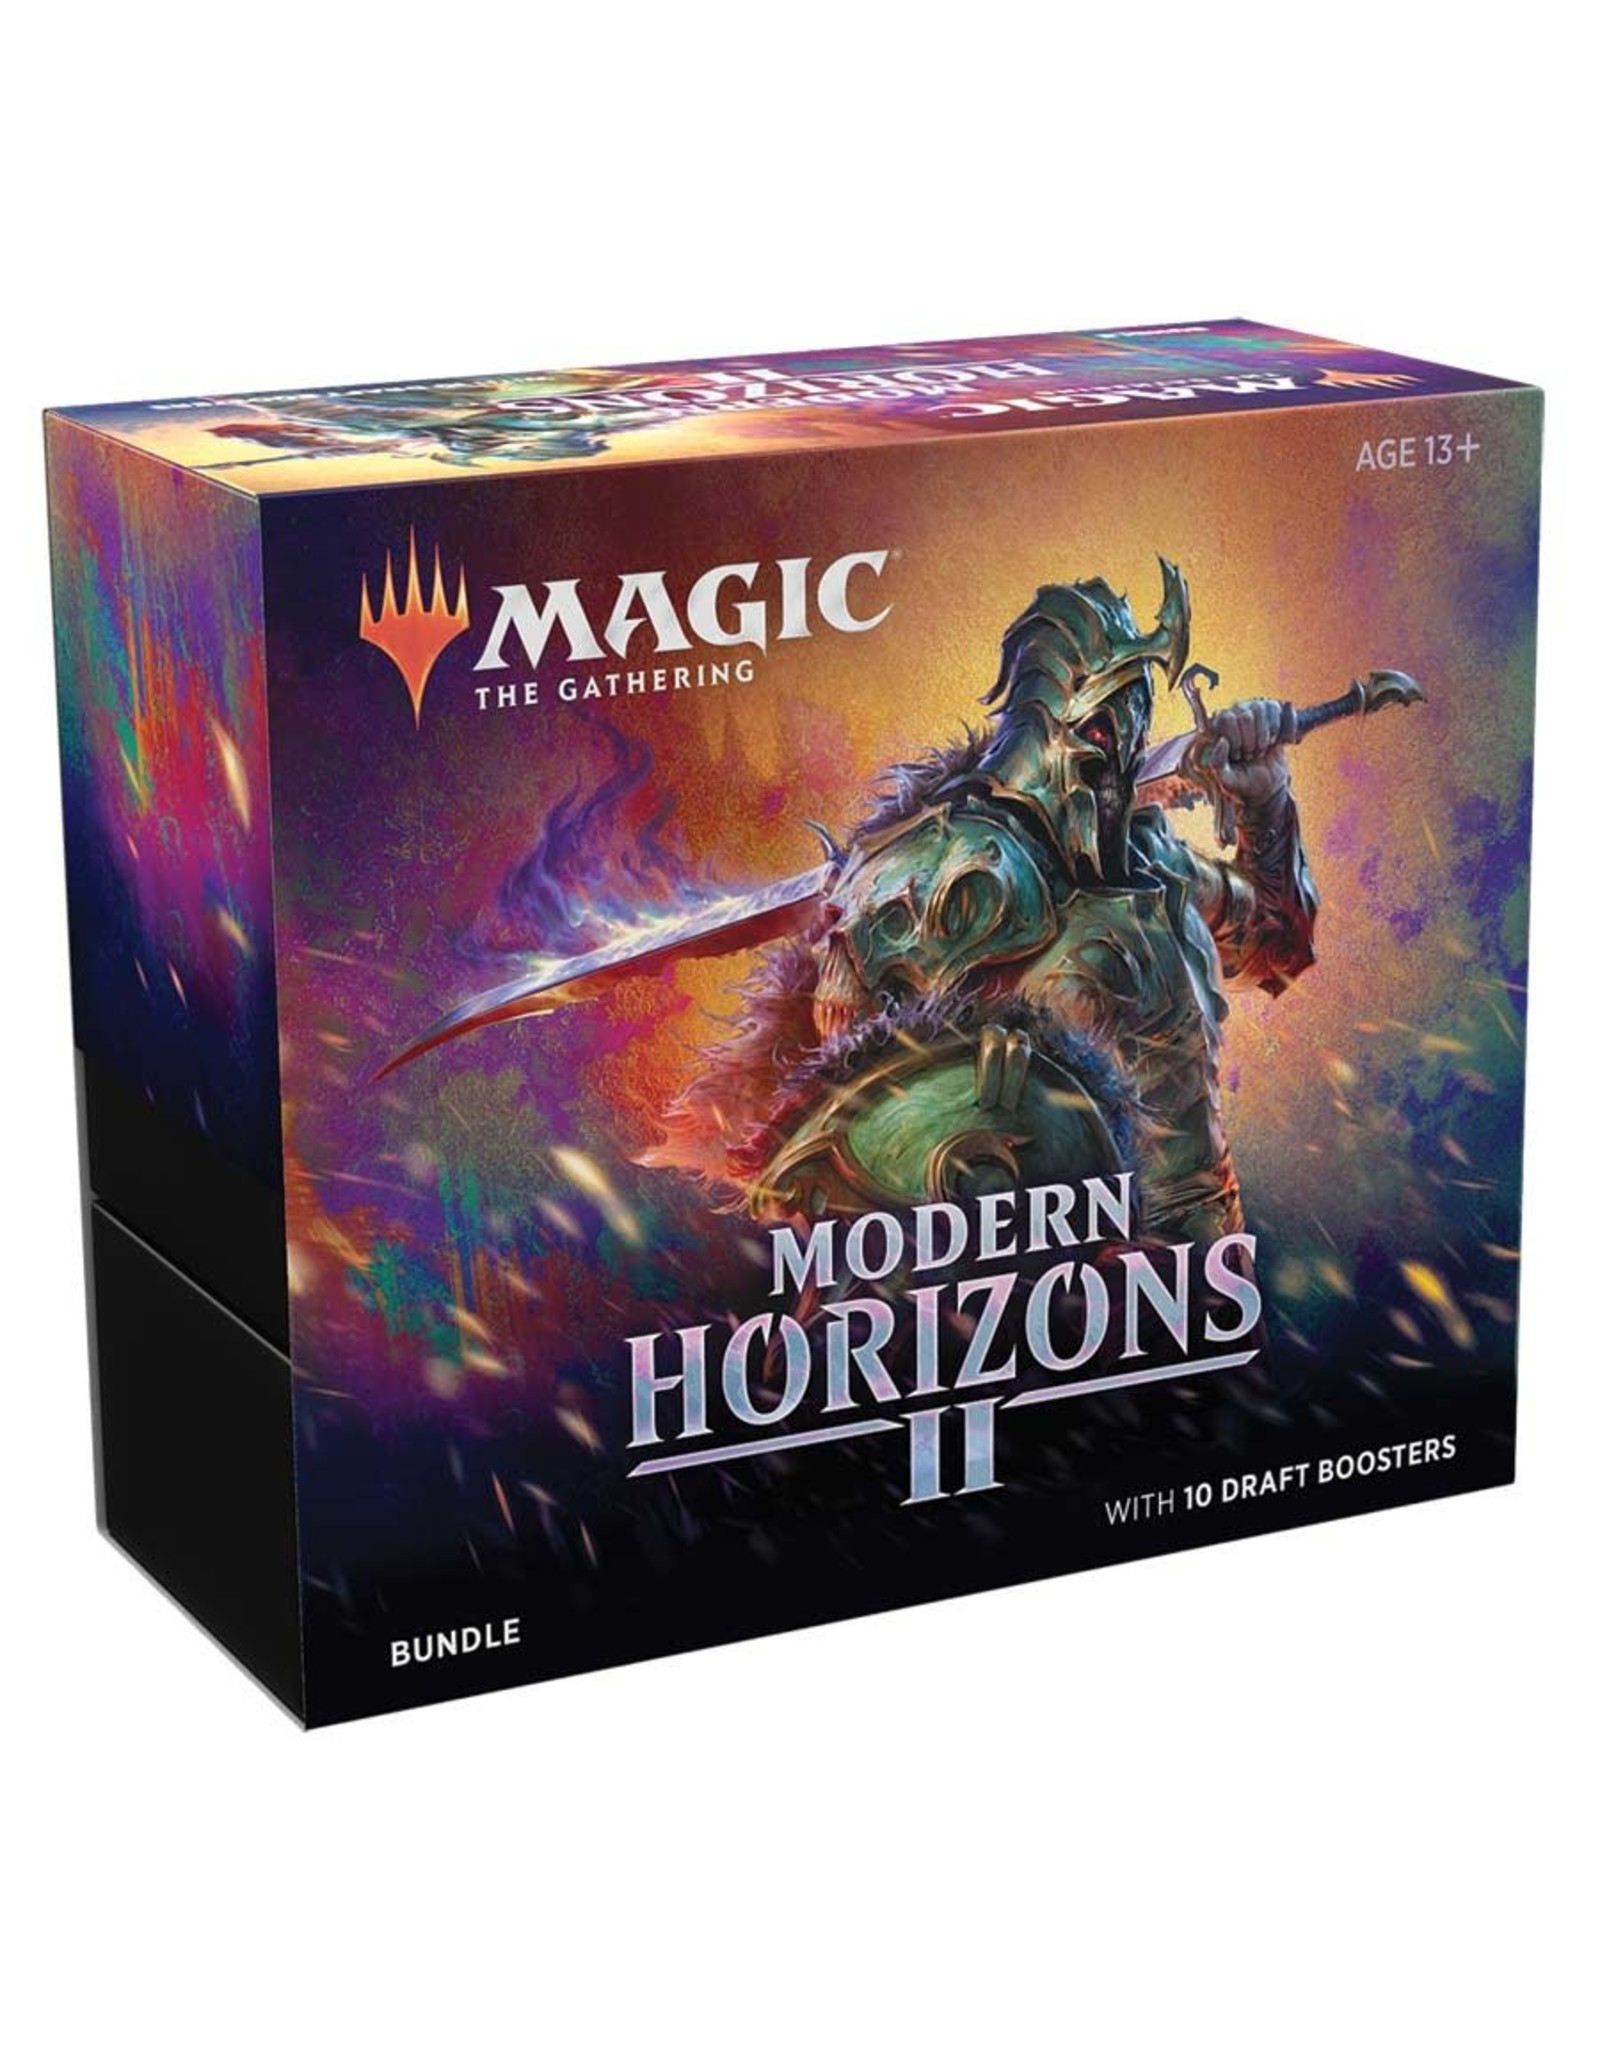 WIZARDS OF THE COAST MODERN HORIZONS II BUNDLE PRE-ORDER